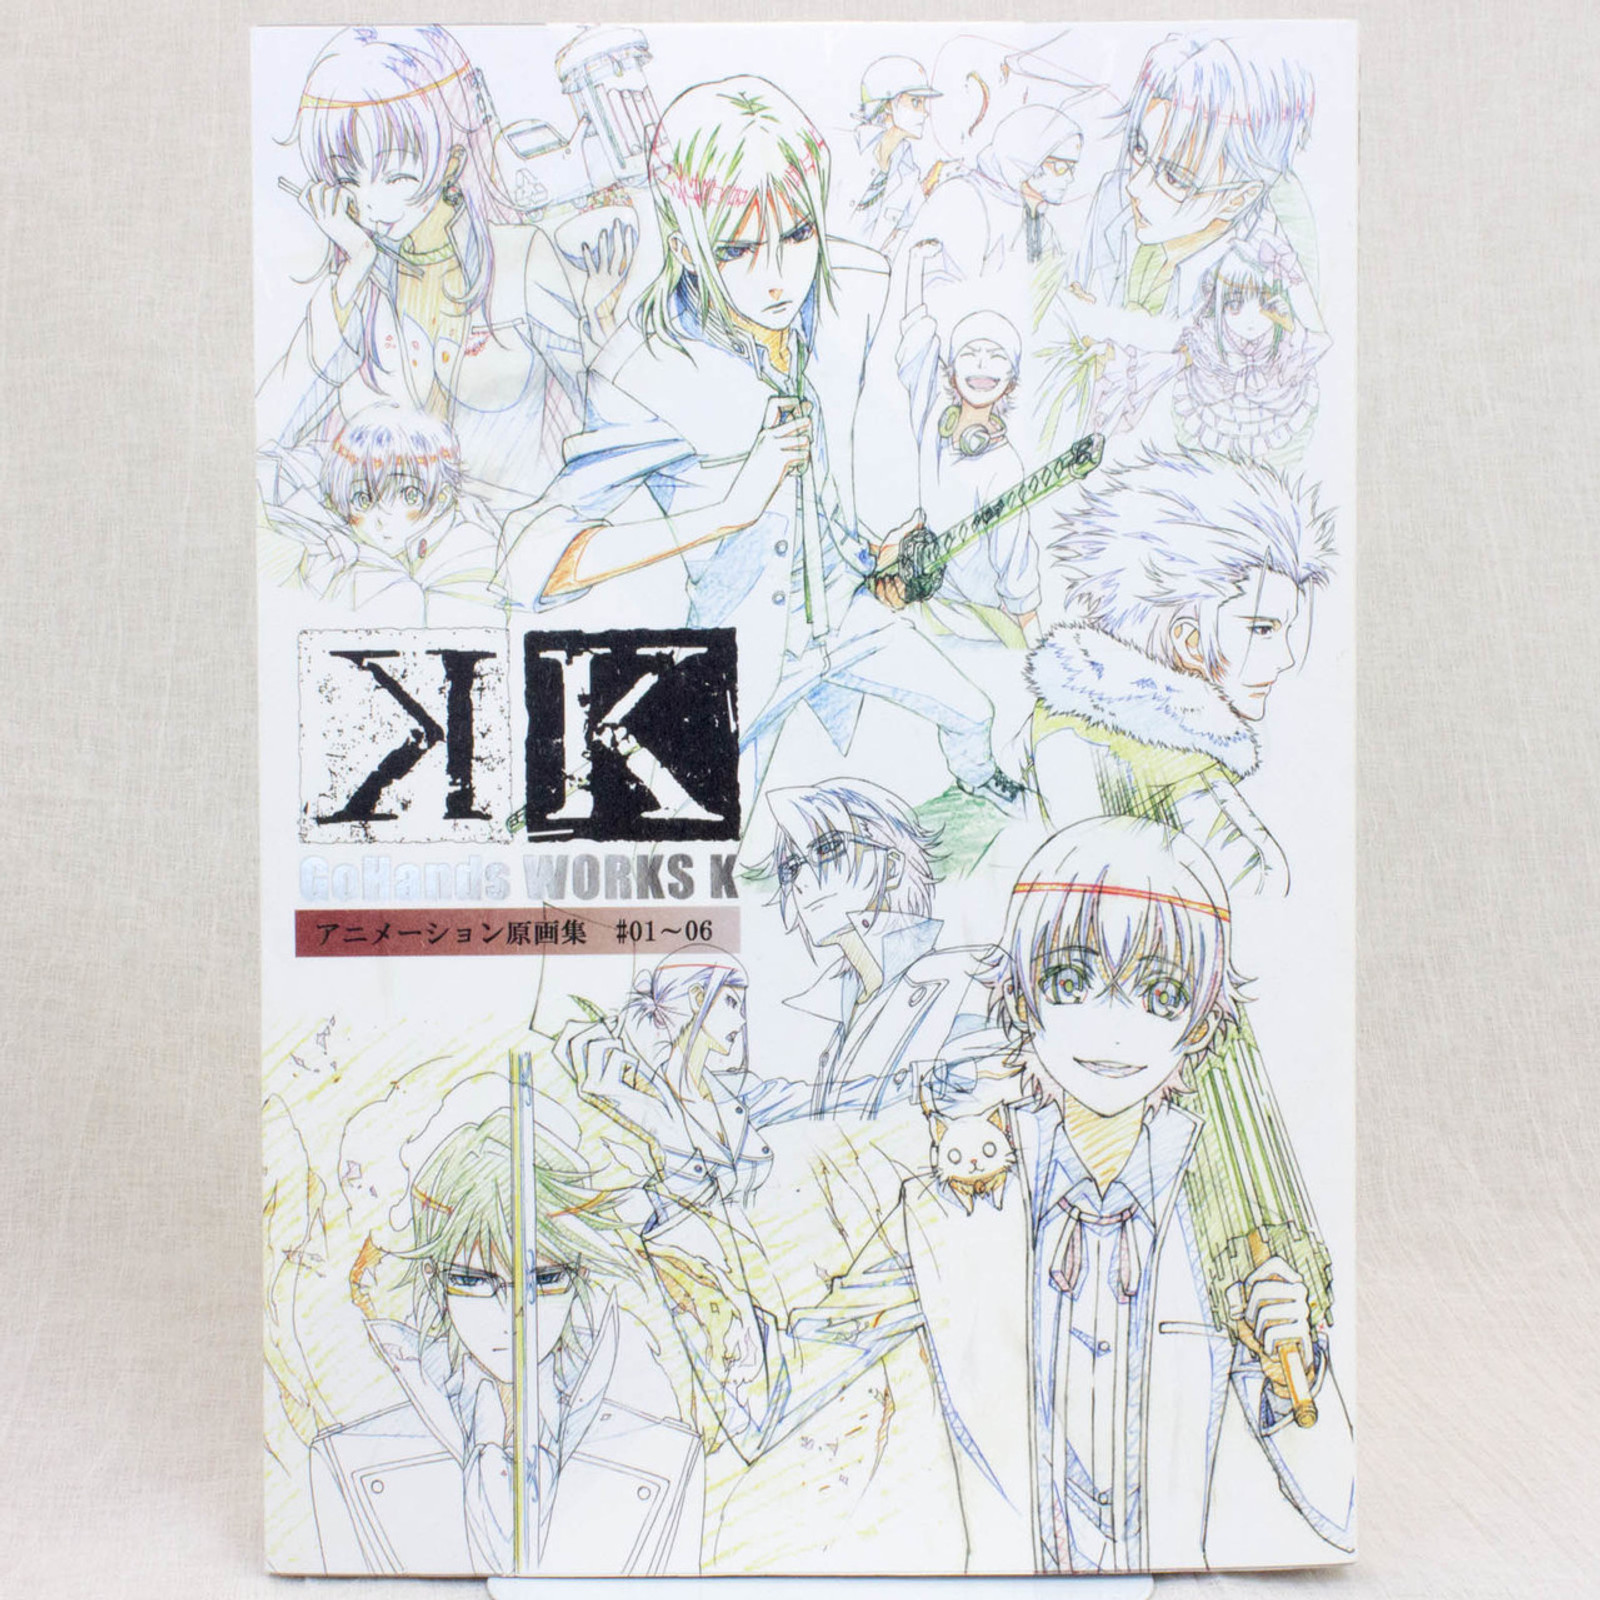 GoHands WORKS [K] Project Original Sketches Art Book #01-06 JAPAN ANIME MANGA